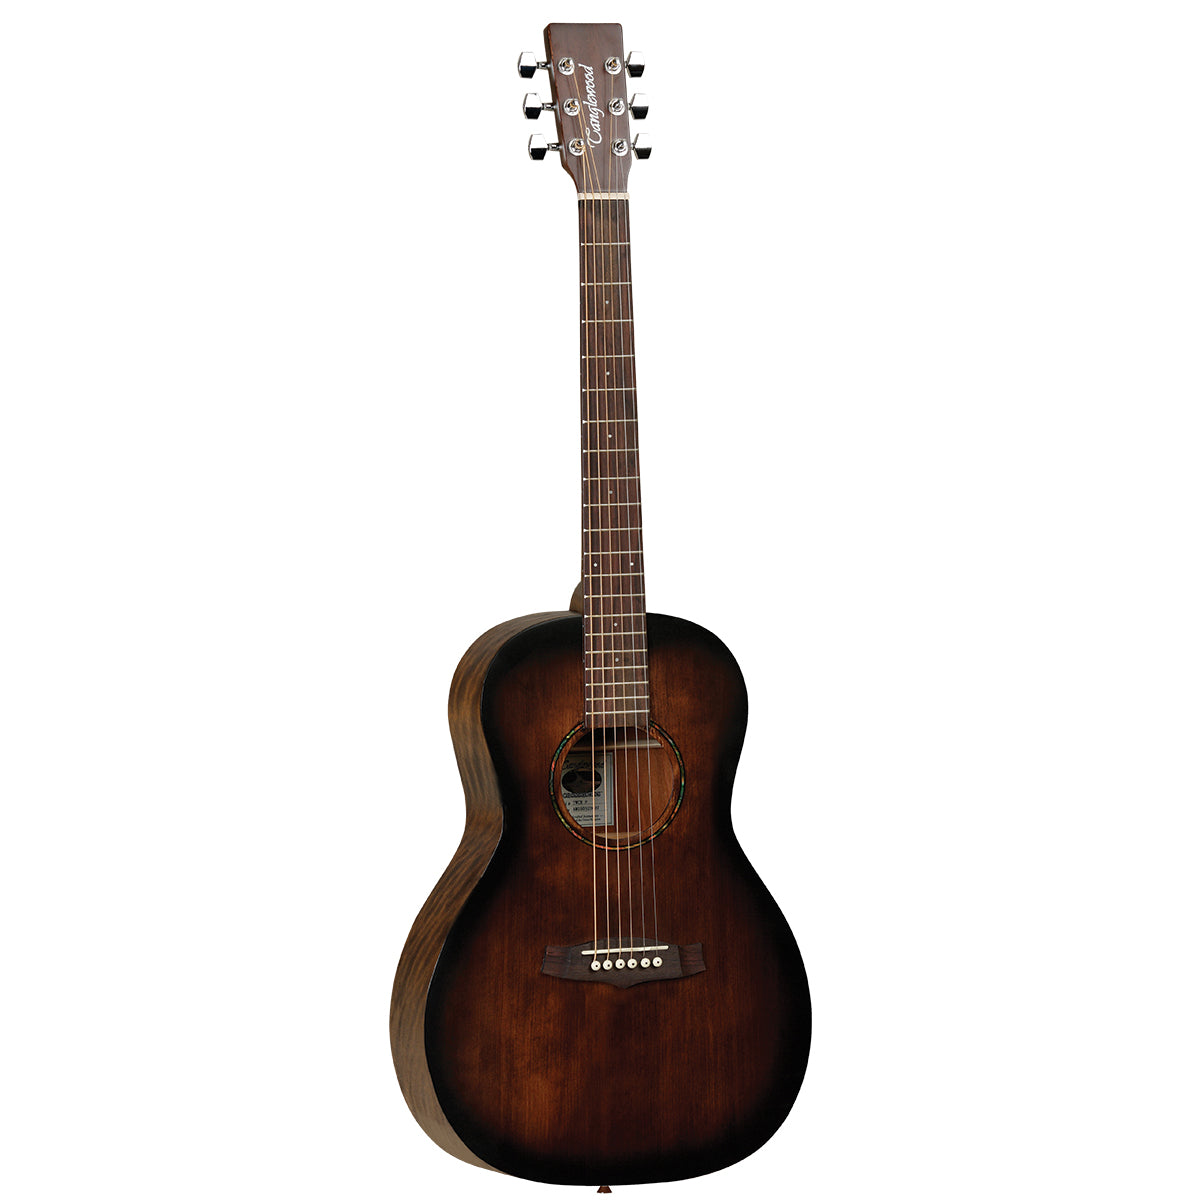 Tanglewood Crossroads Acoustic Guitar Parlour Whiskey Barrel Burst Satin